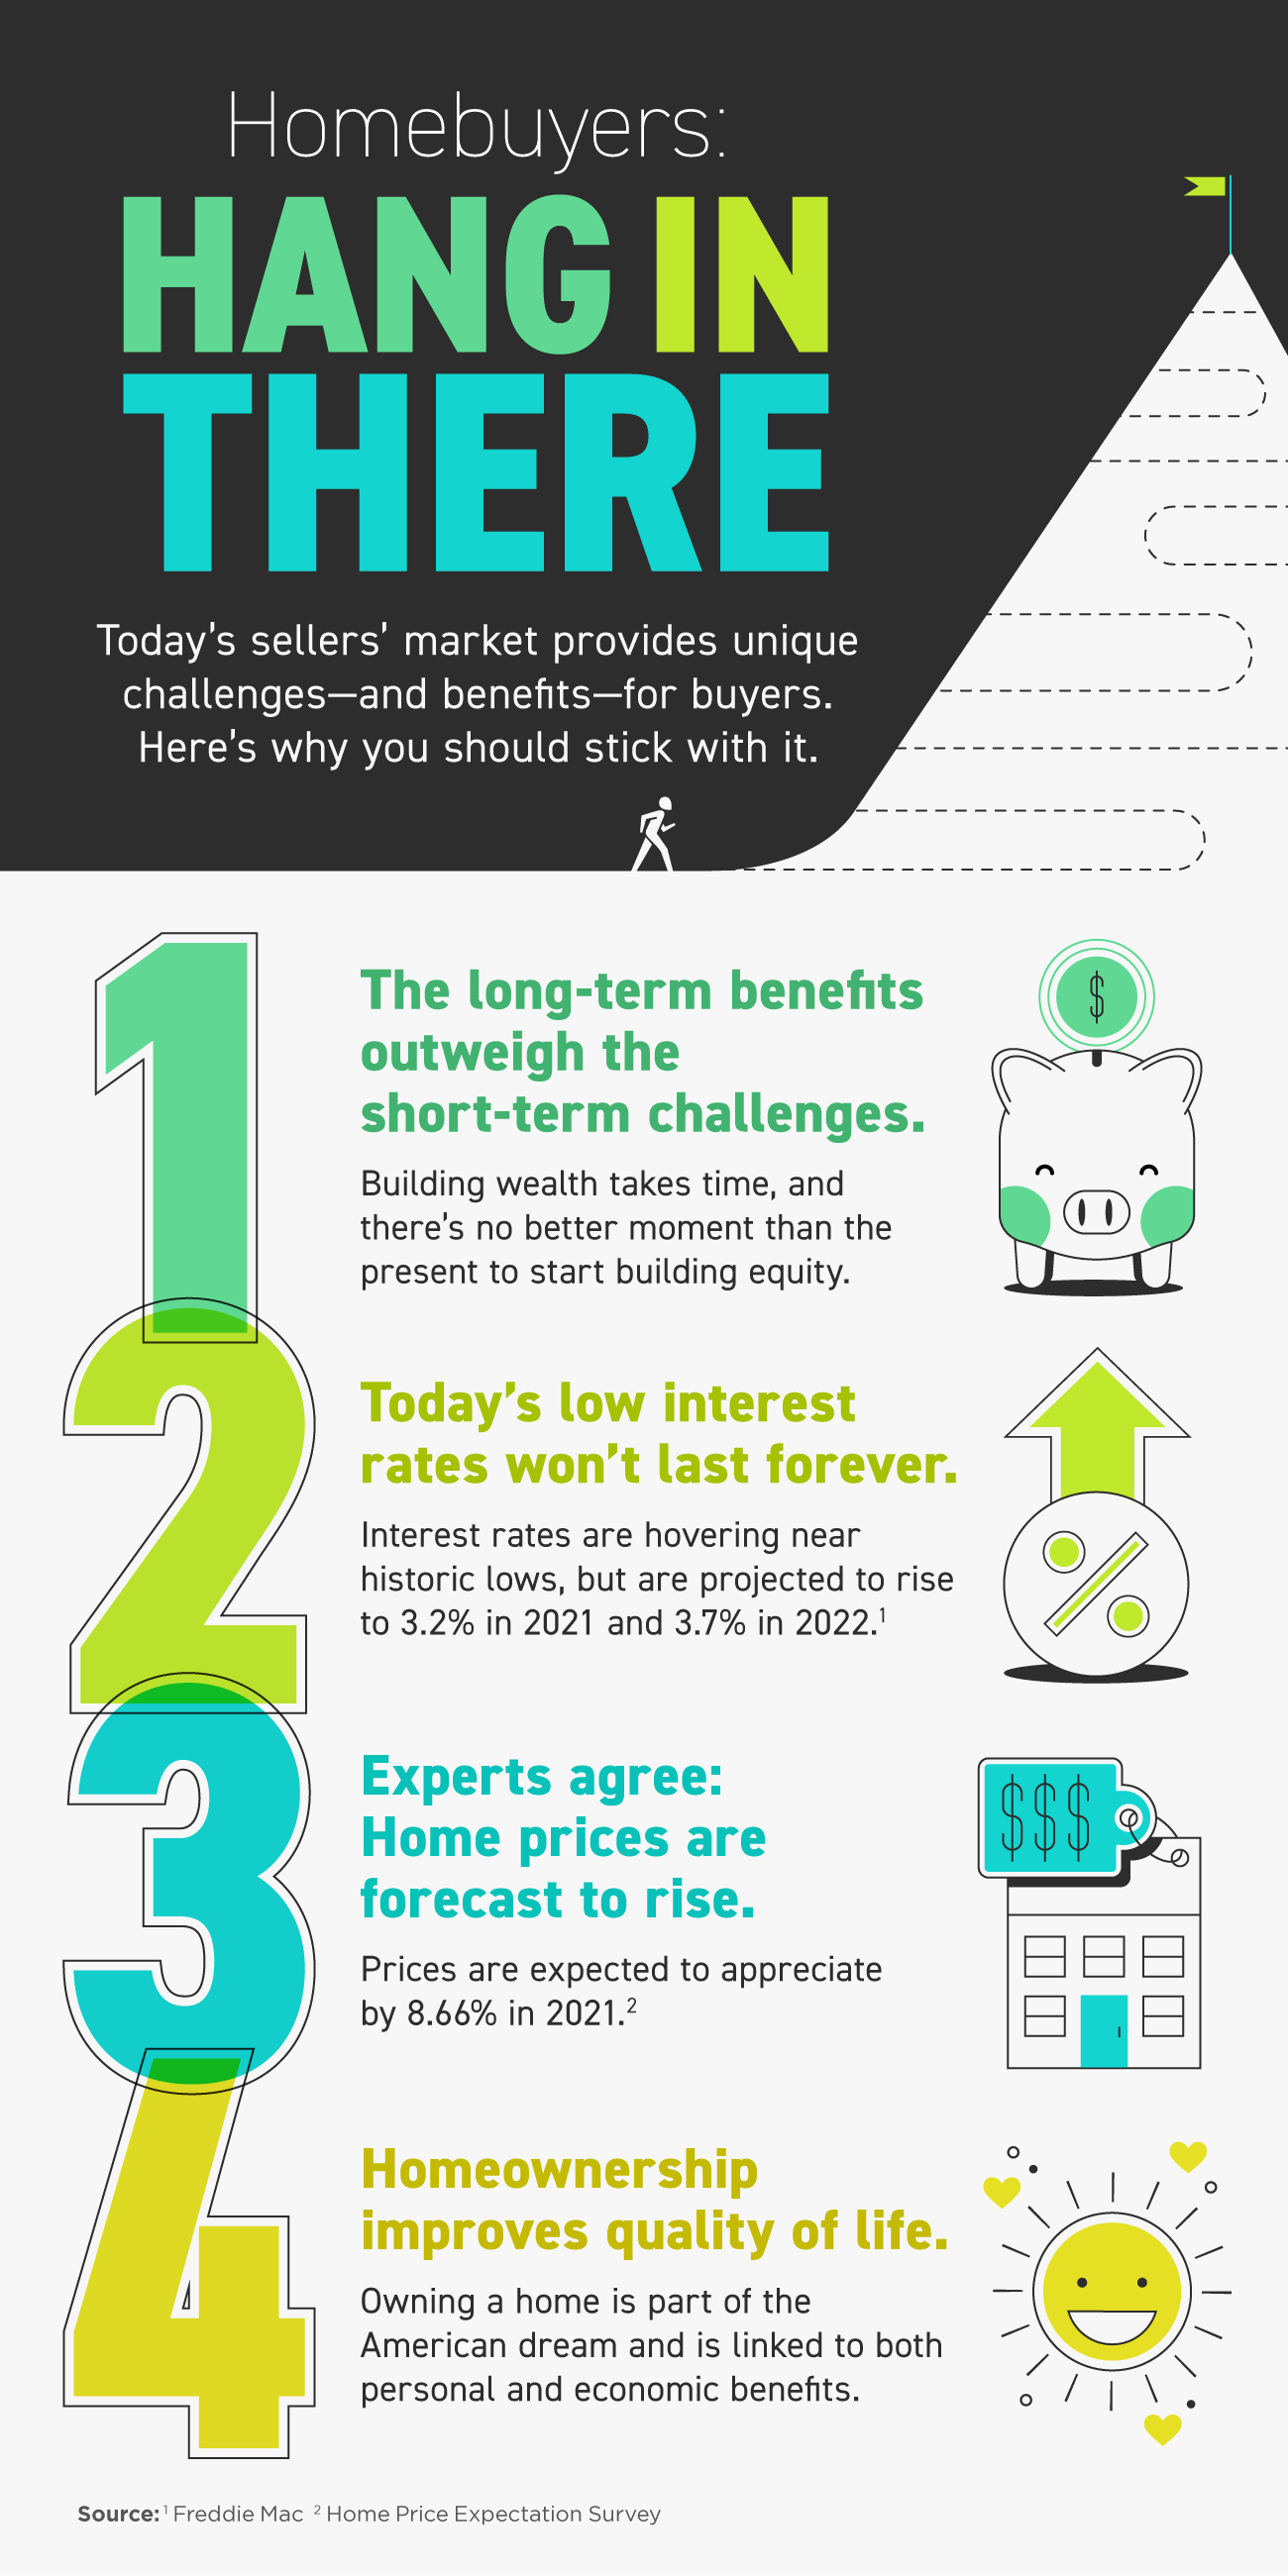 Homebuyers: Hang in There [INFOGRAPHIC]   Simplifying The Market